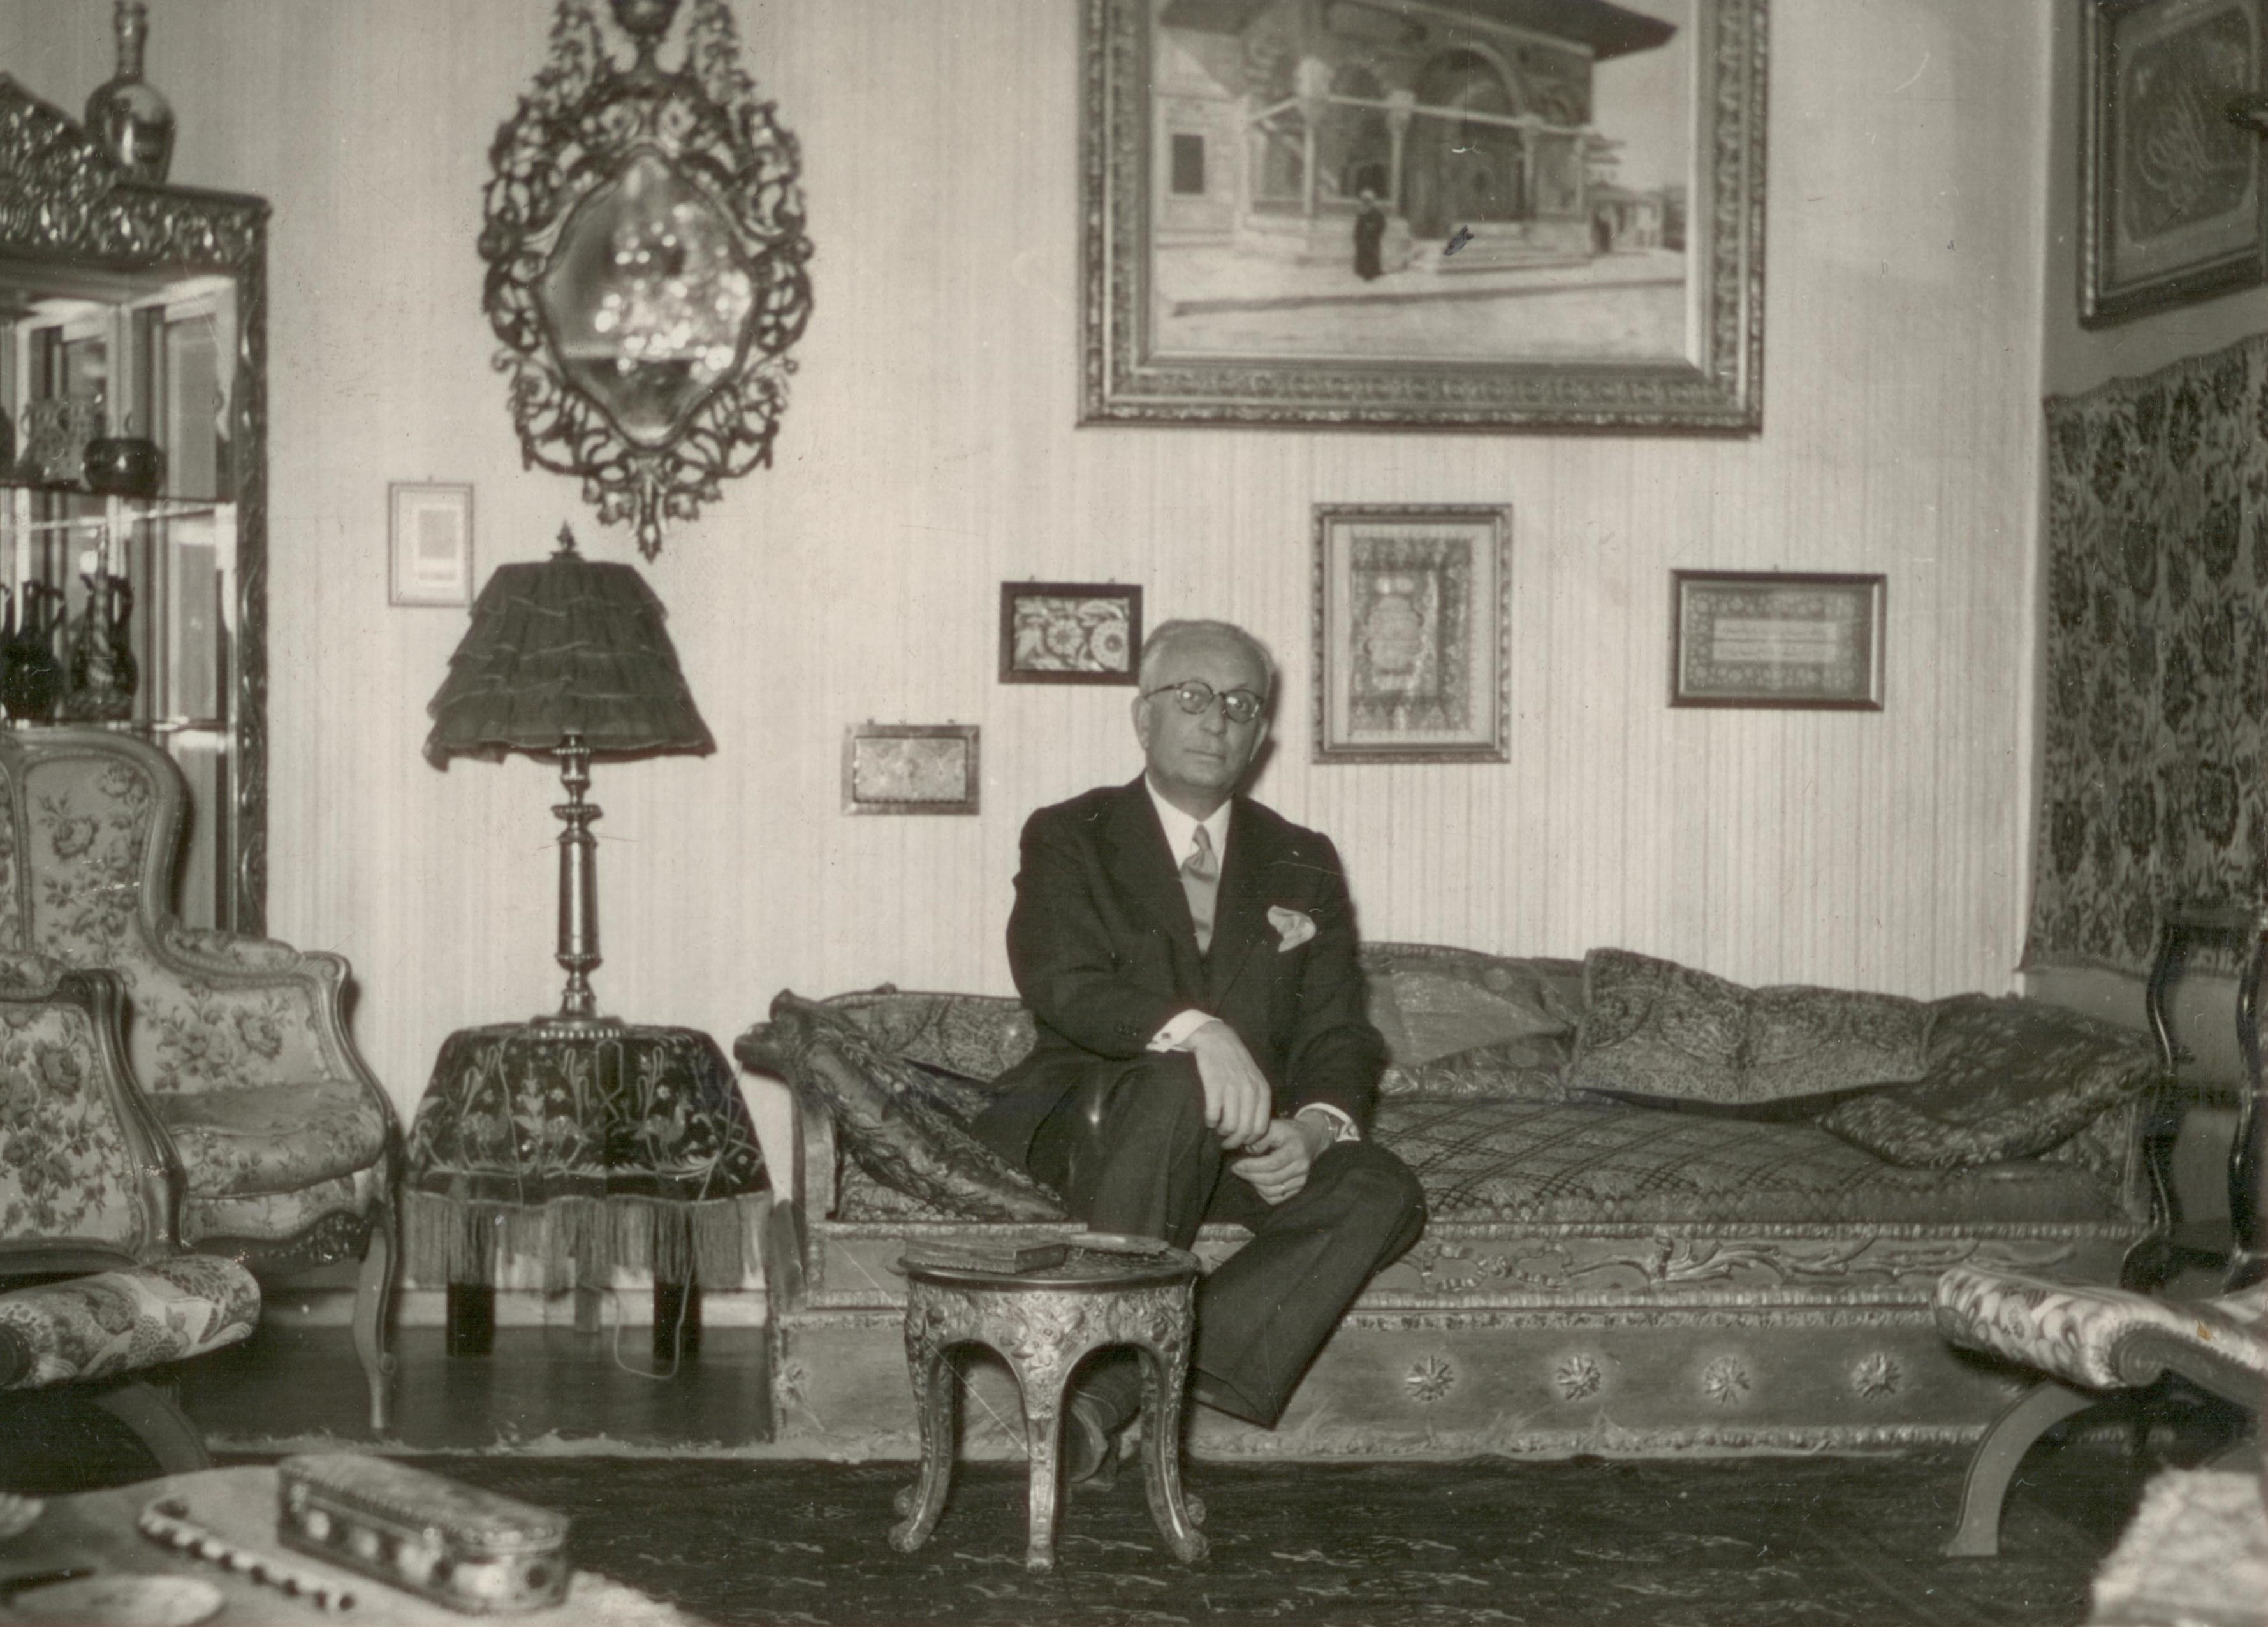 Ekrem Hakkı Ayverdi in the living room of his home in Fatih